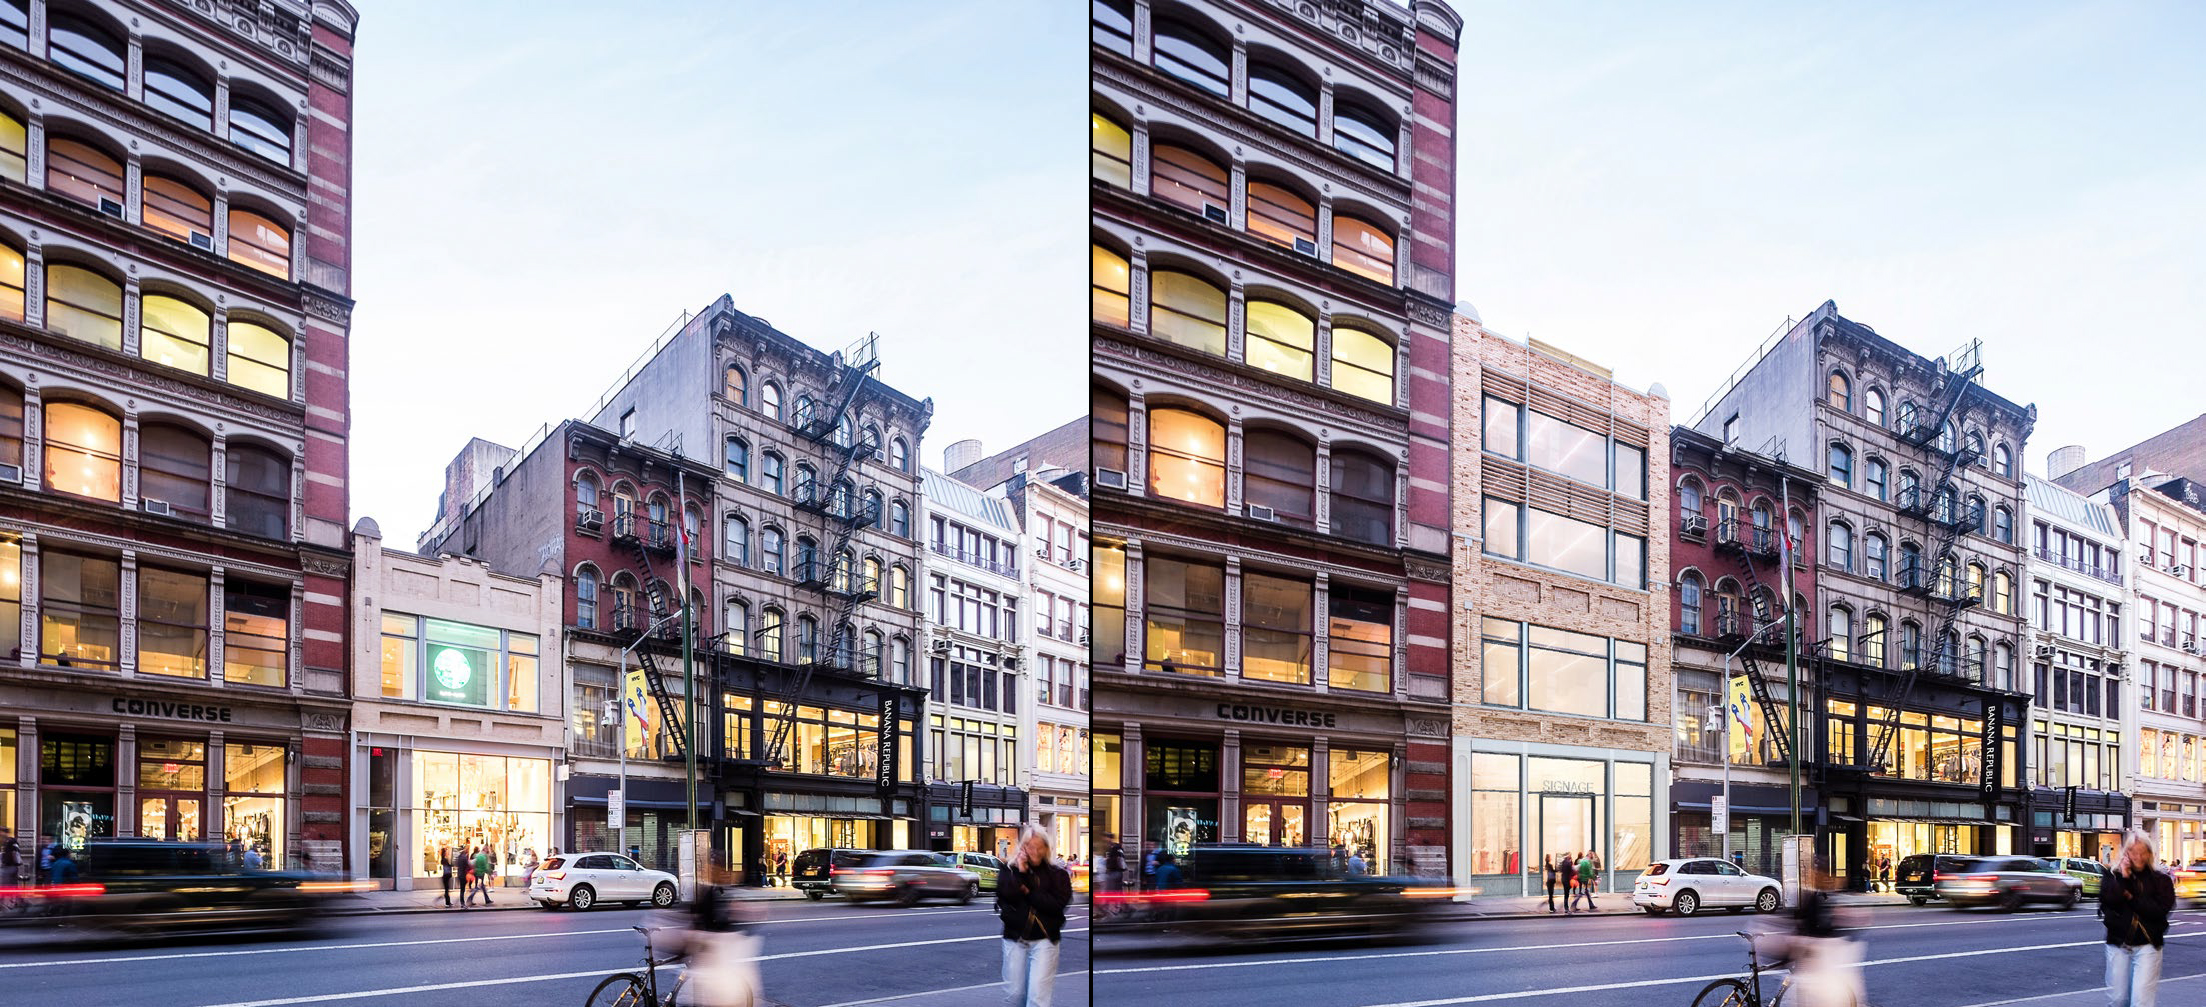 558 Broadway, existing and proposed